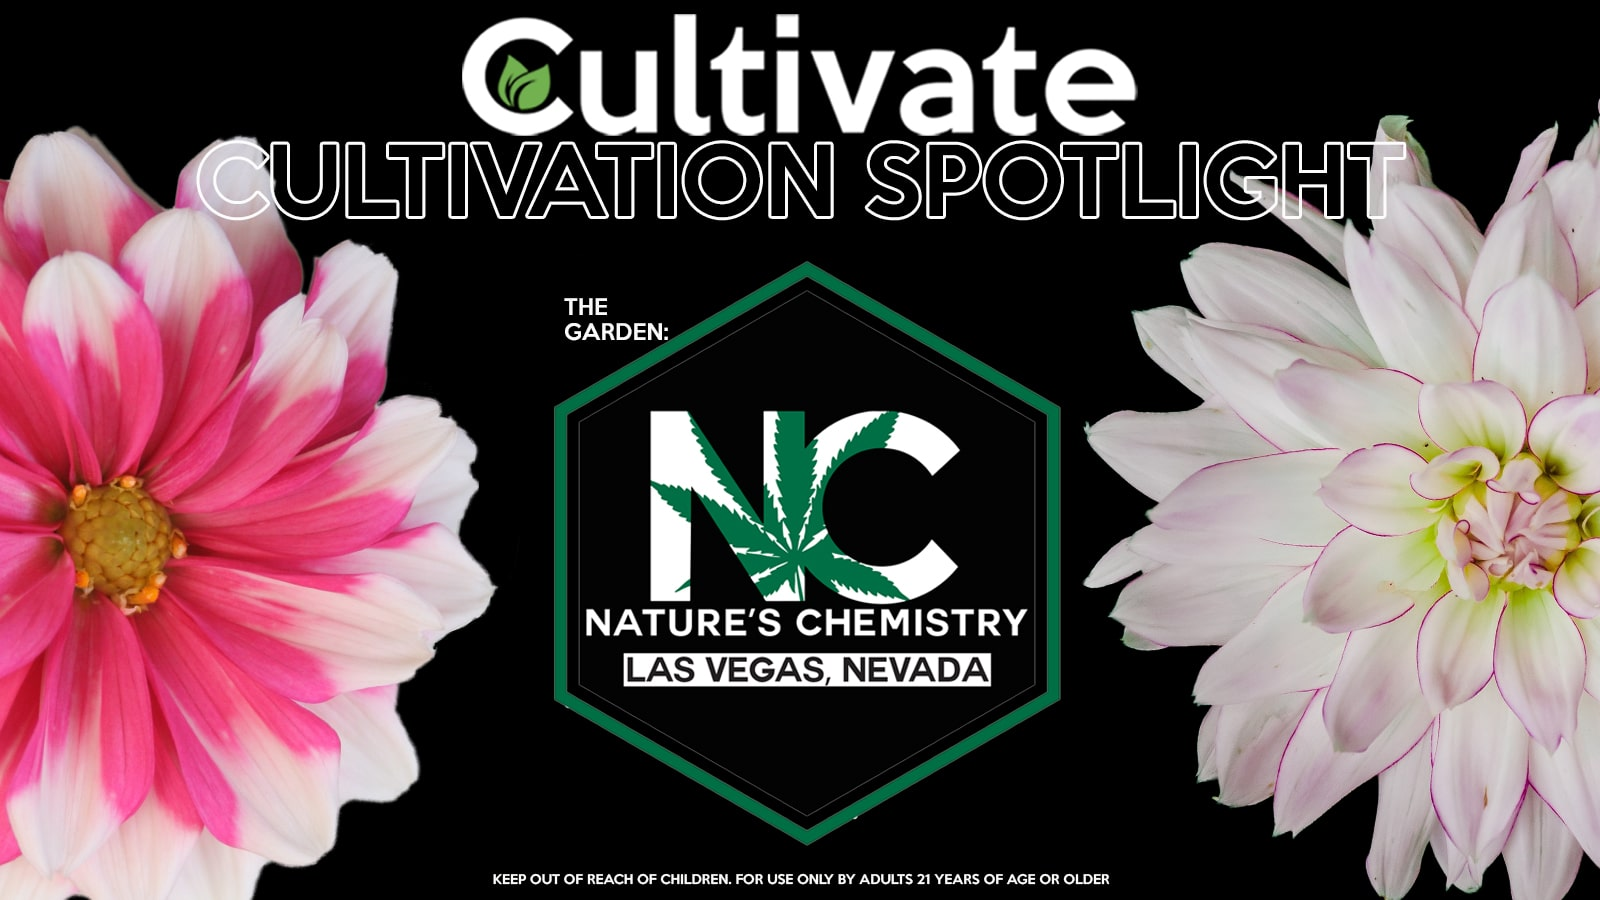 NATURECHEMFLOWER